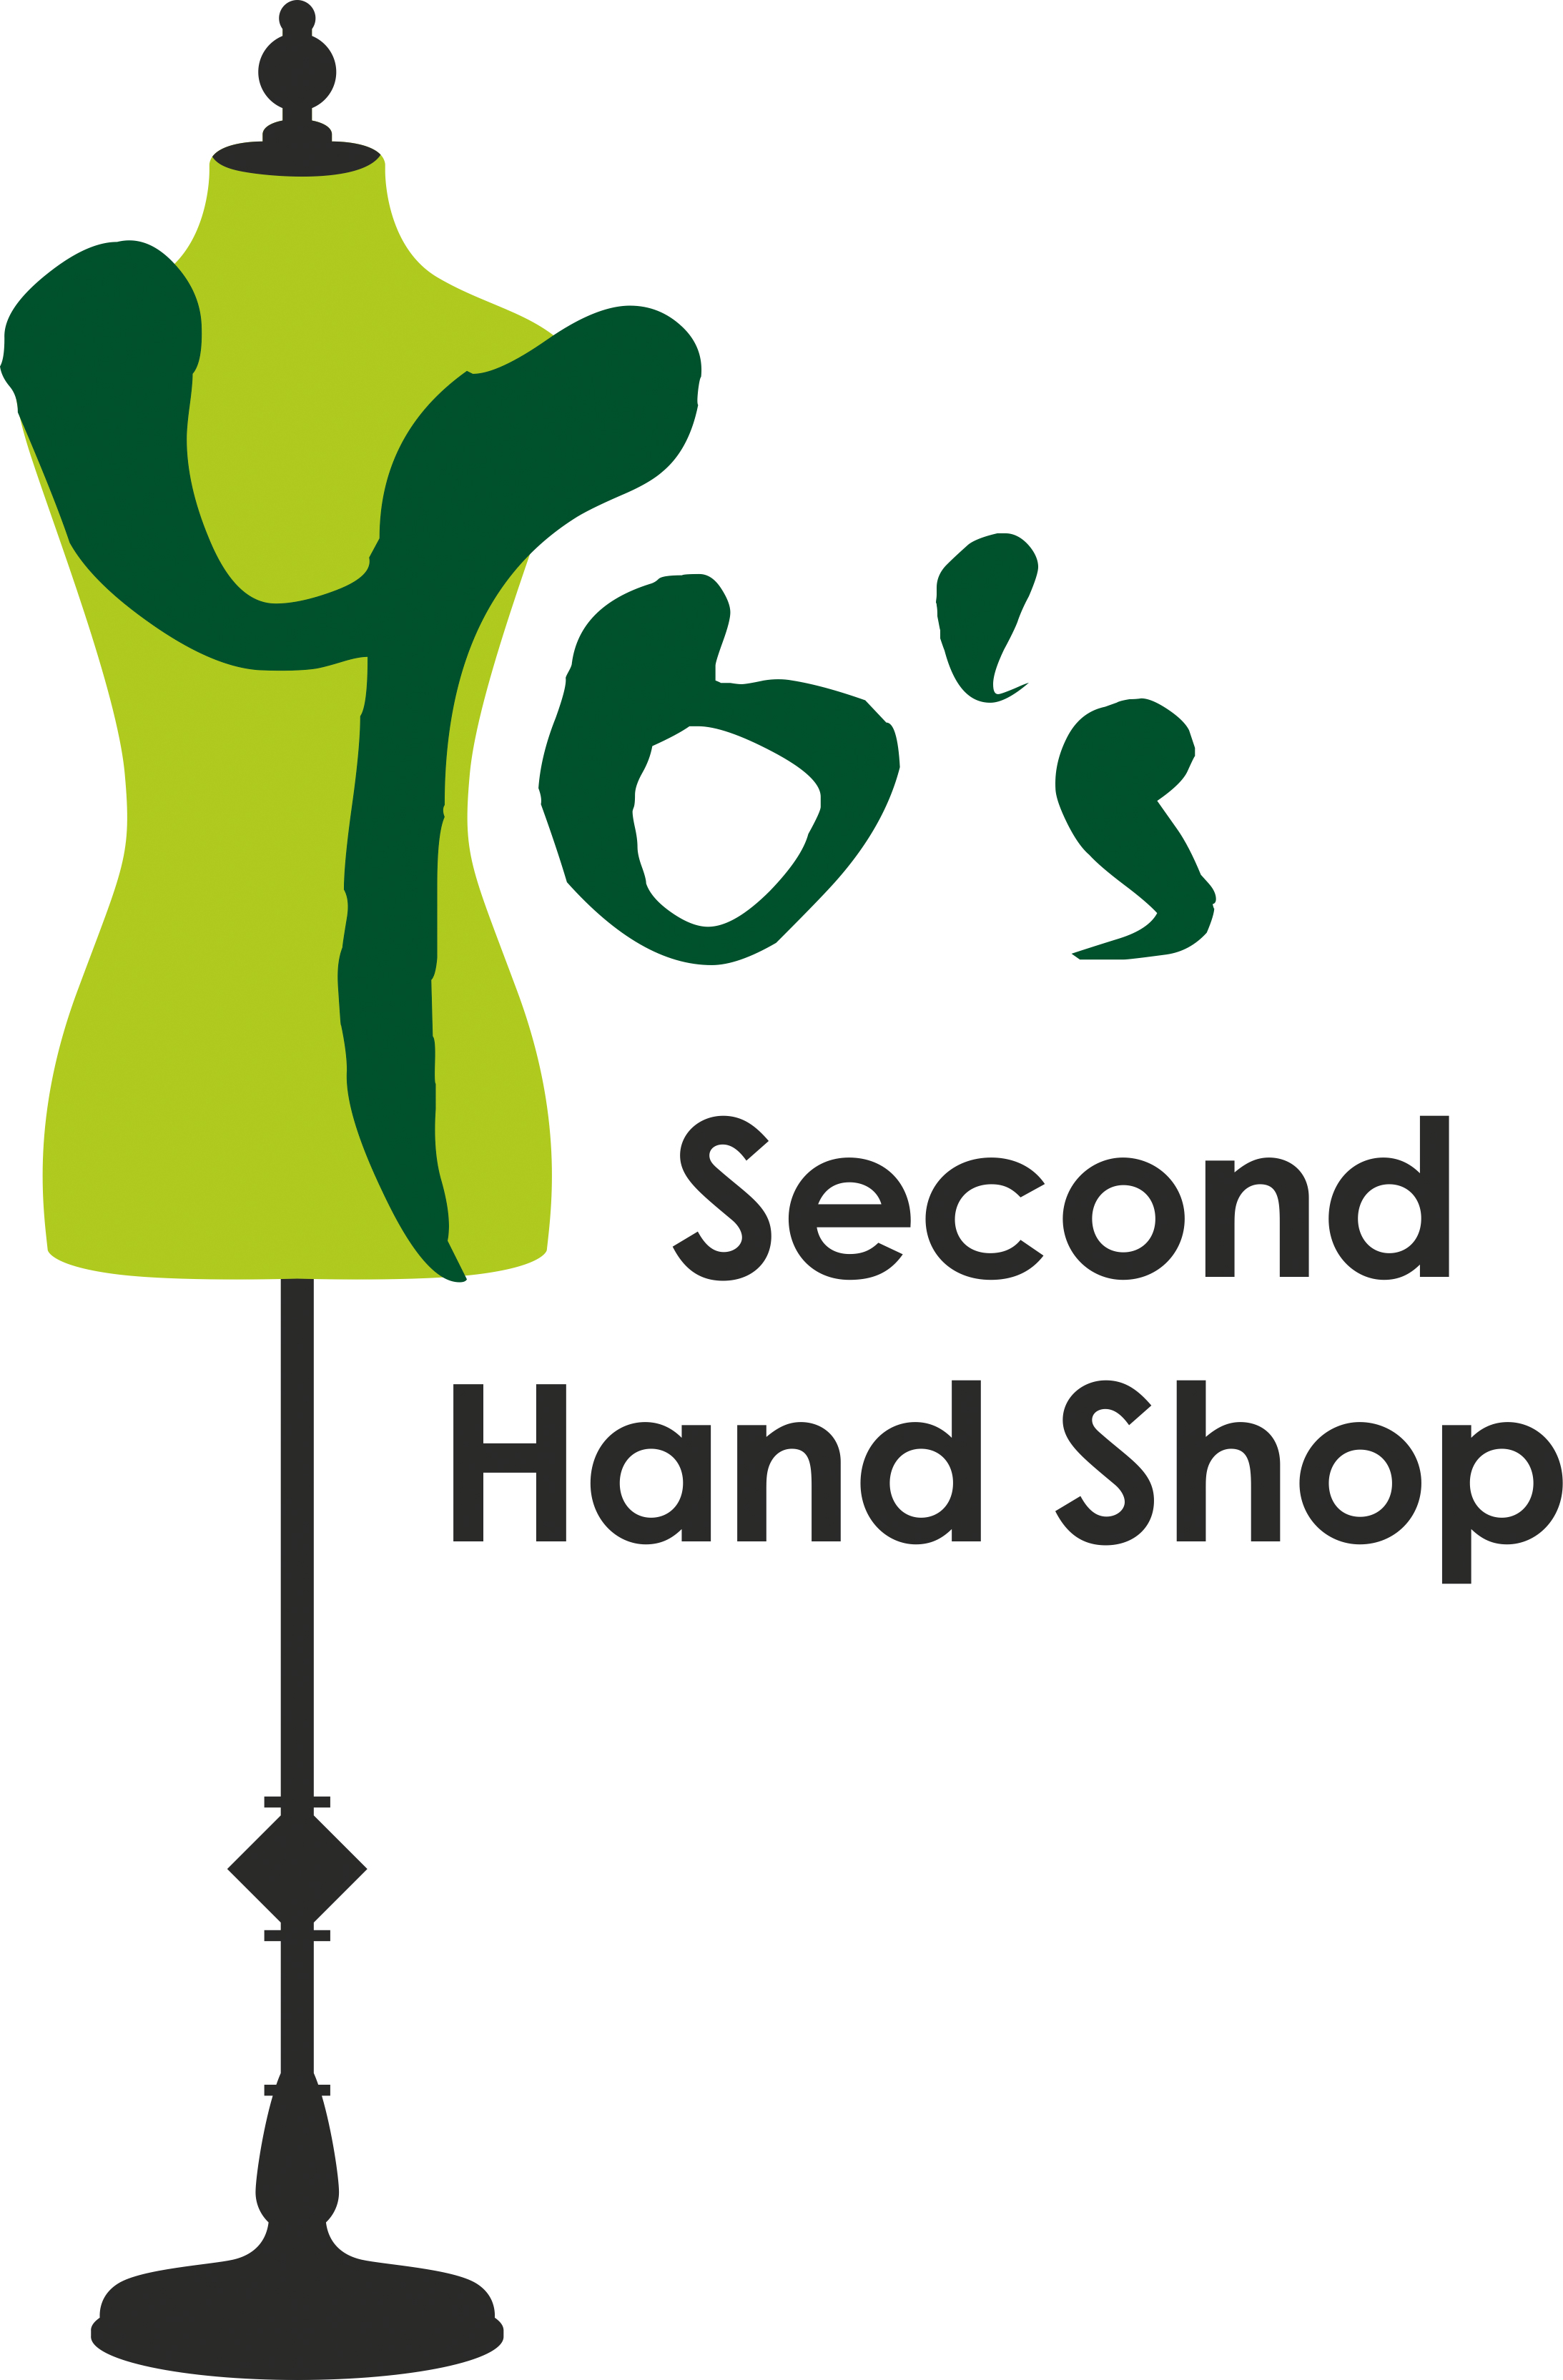 yos-second-hand-shop-logo-rz-1